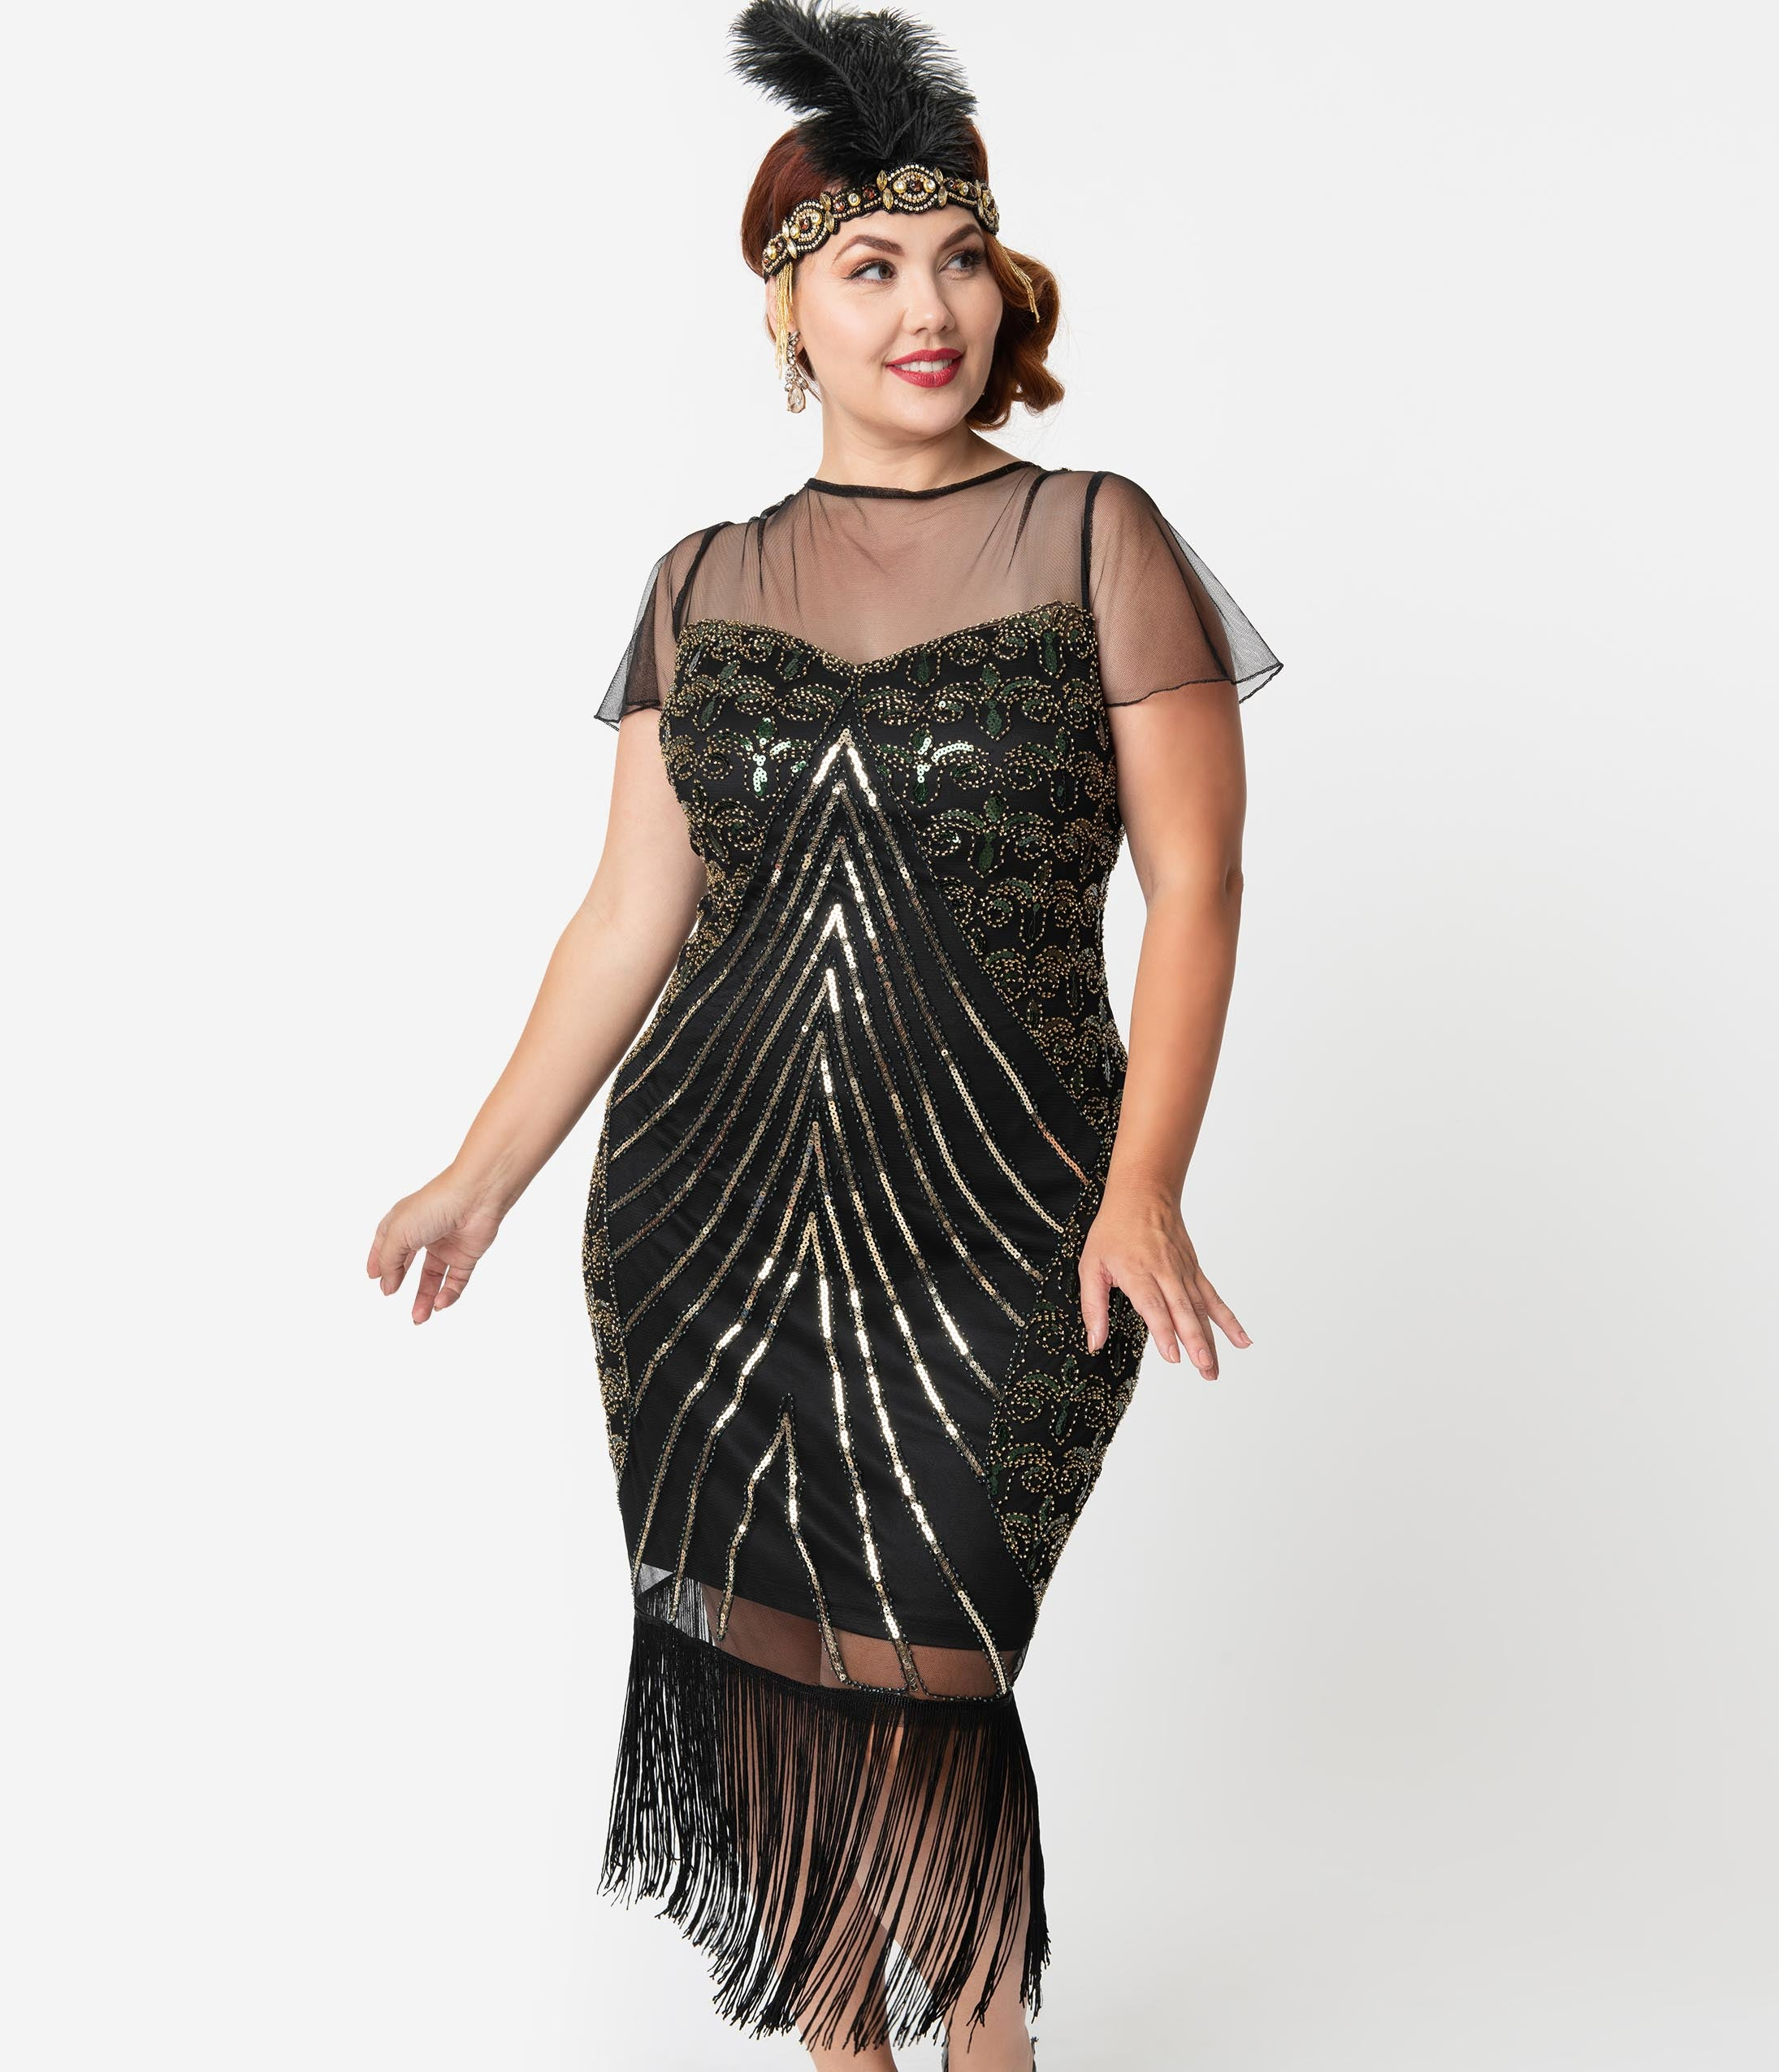 1920s Plus Size Flapper Dresses, Gatsby Dresses, Flapper Costumes Unique Vintage Plus Size Black  Gold Beaded Cap Sleeve Rolande Fringe Flapper Dress $98.00 AT vintagedancer.com